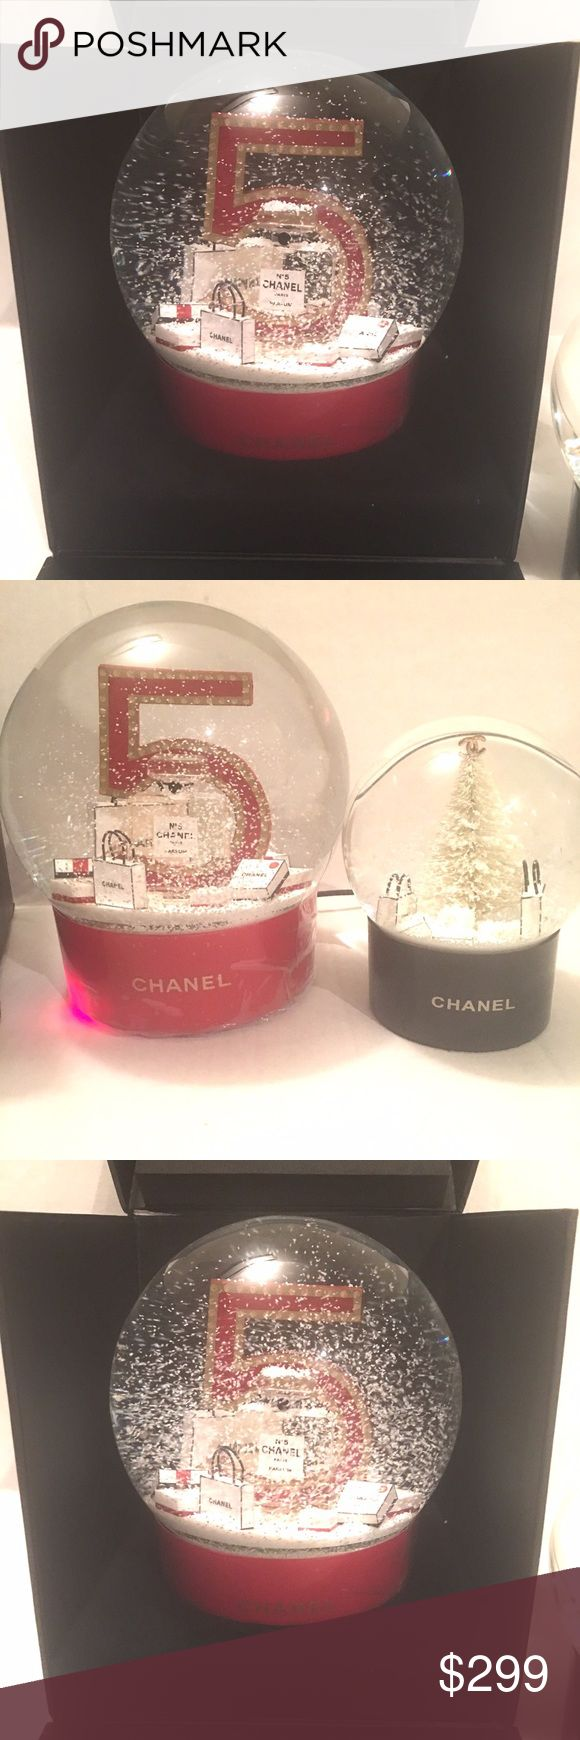 Chanel jumbo snow globe New with box- plugs in to keep the snow swirling. I also have the smaller snow globe for sale CHANEL Accessories